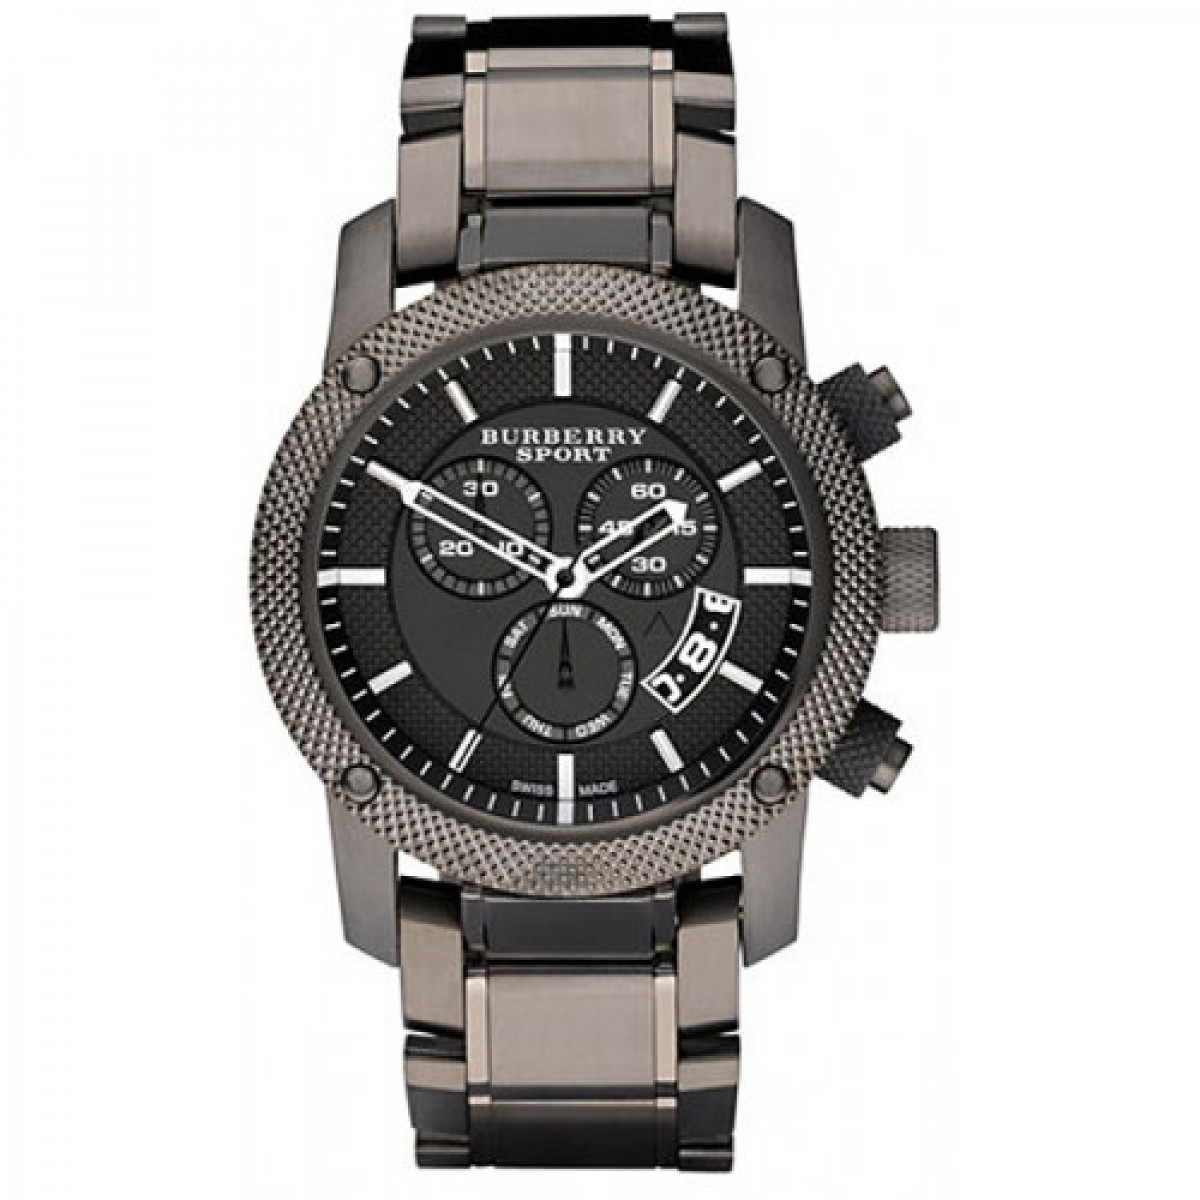 Mens Burberry Sport Chronograph Watch BU7716